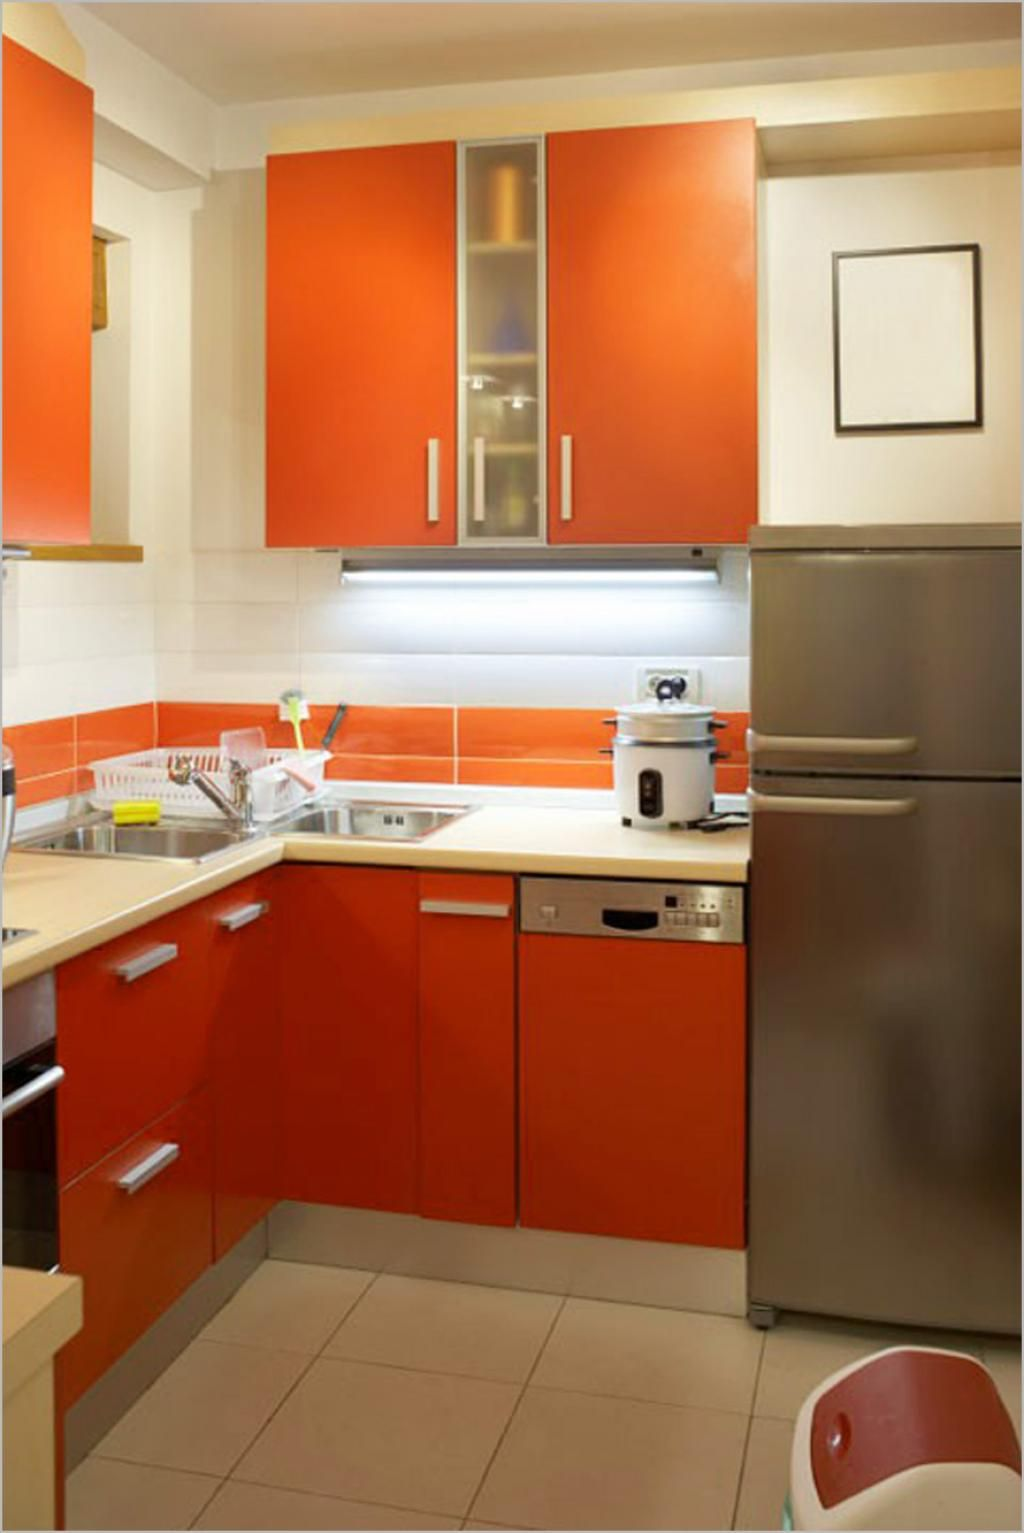 Small kitchen images